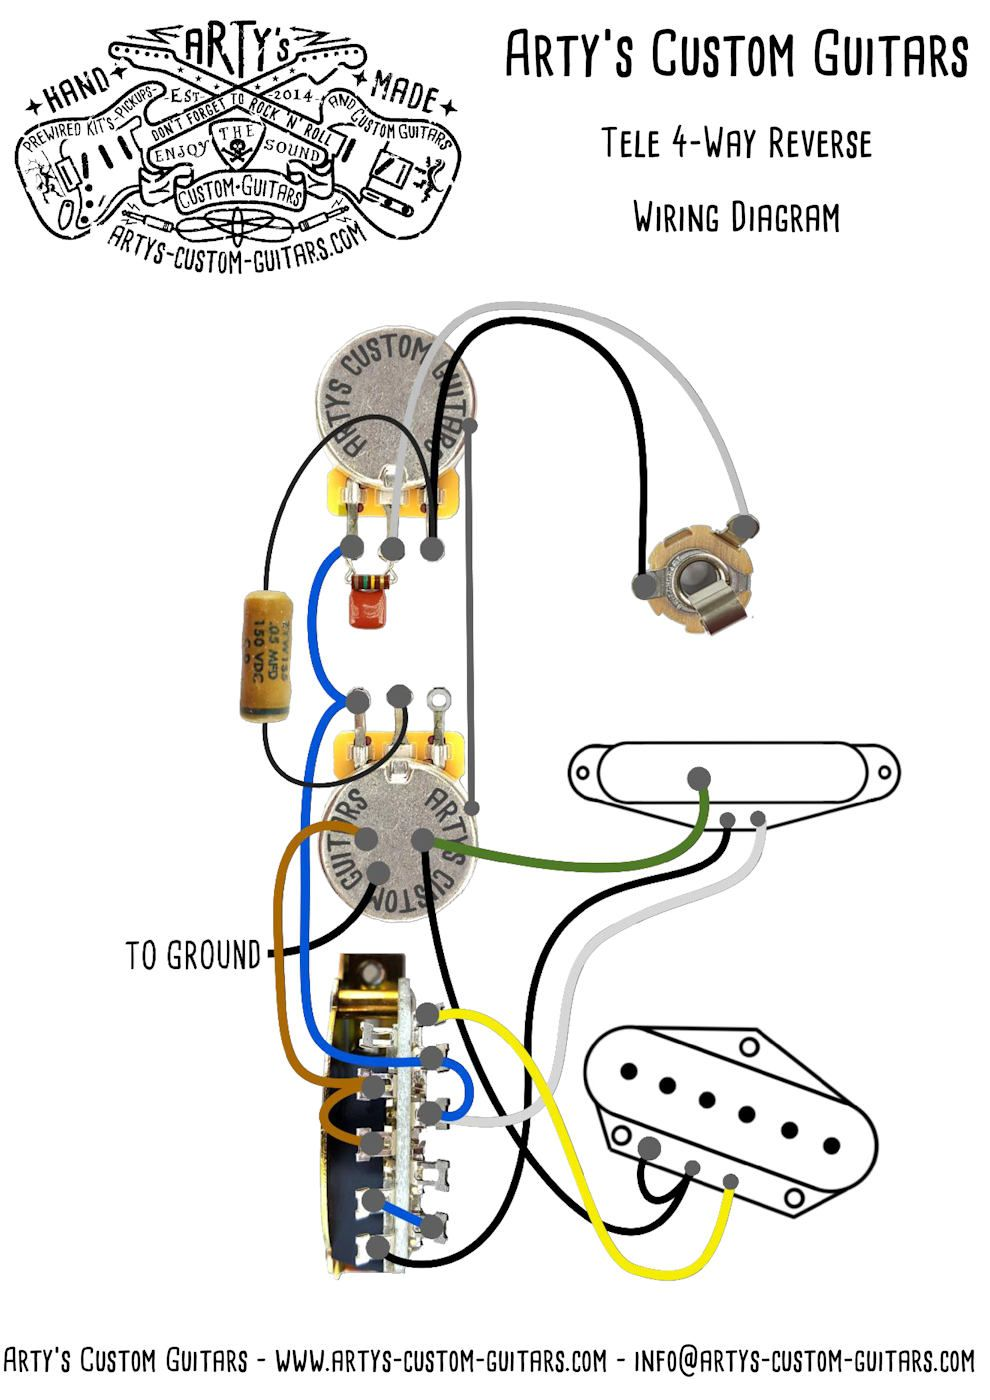 small resolution of telecaster wiring diagram 3 way reverse www artys custom guitars com